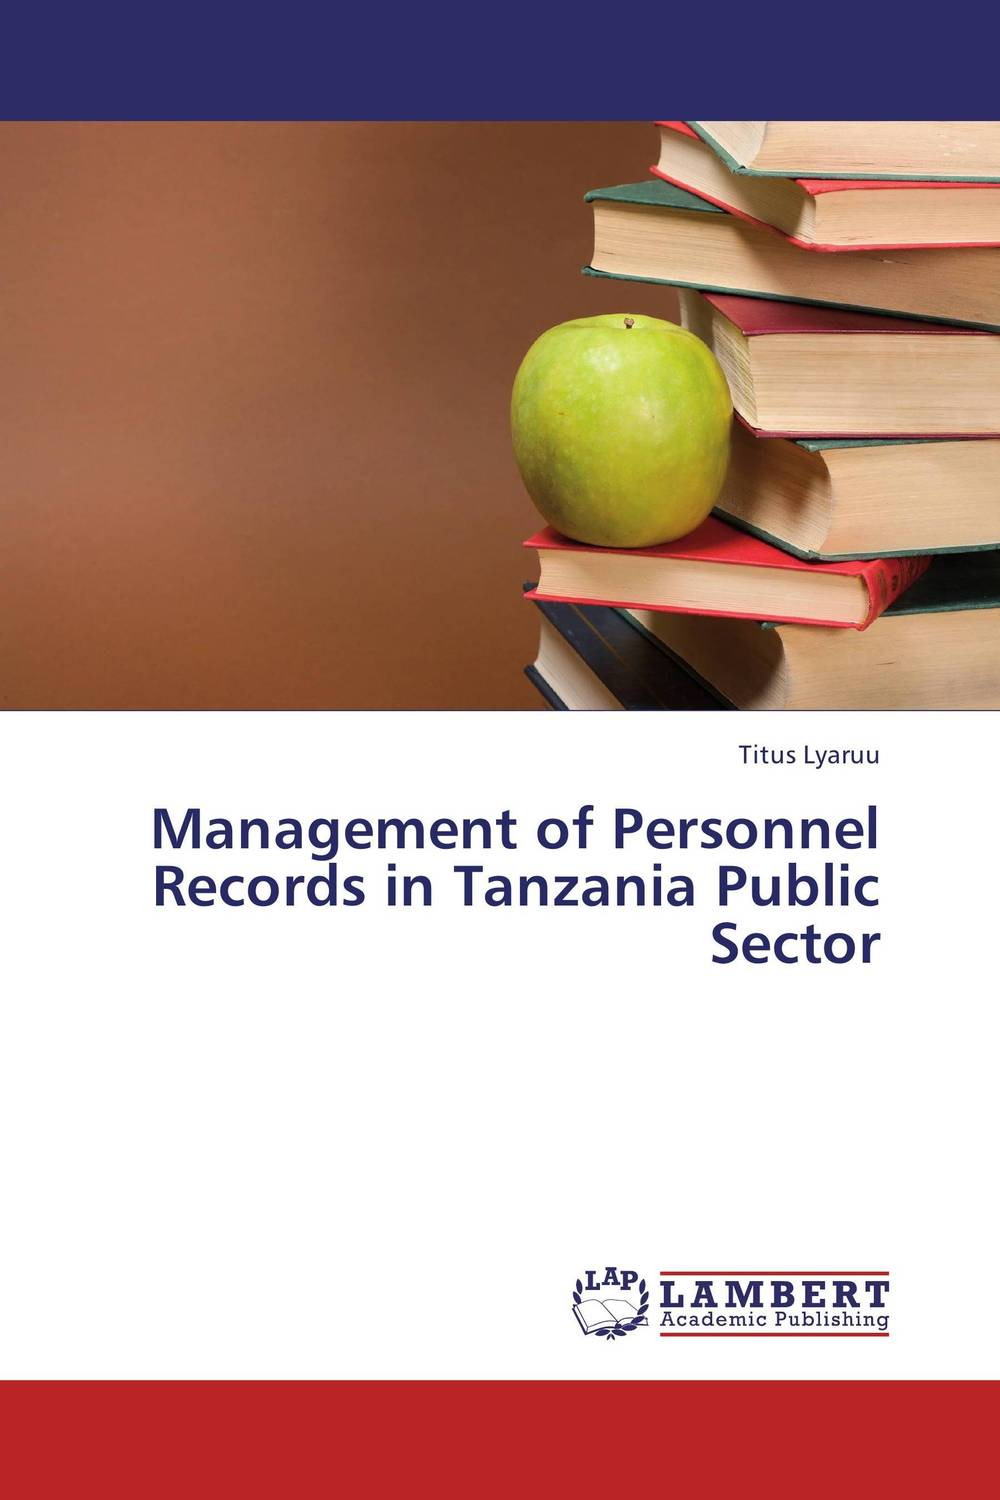 Management of Personnel Records in Tanzania Public Sector